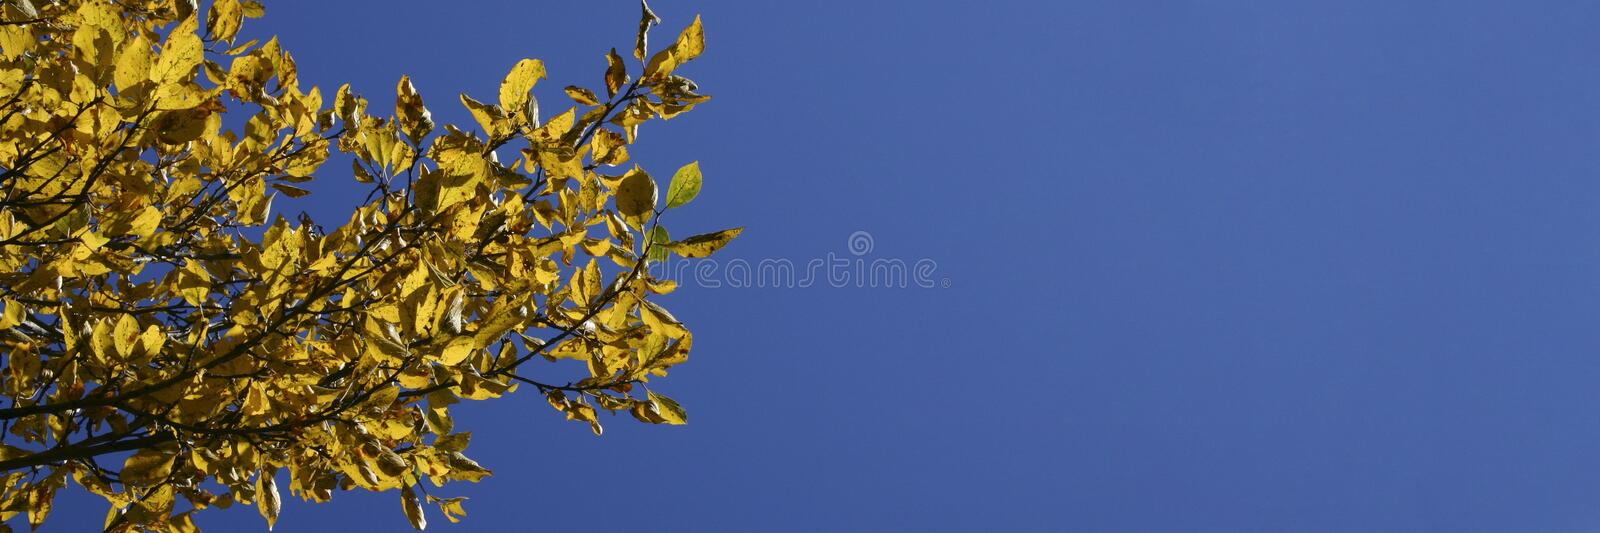 October 1 royalty free stock image